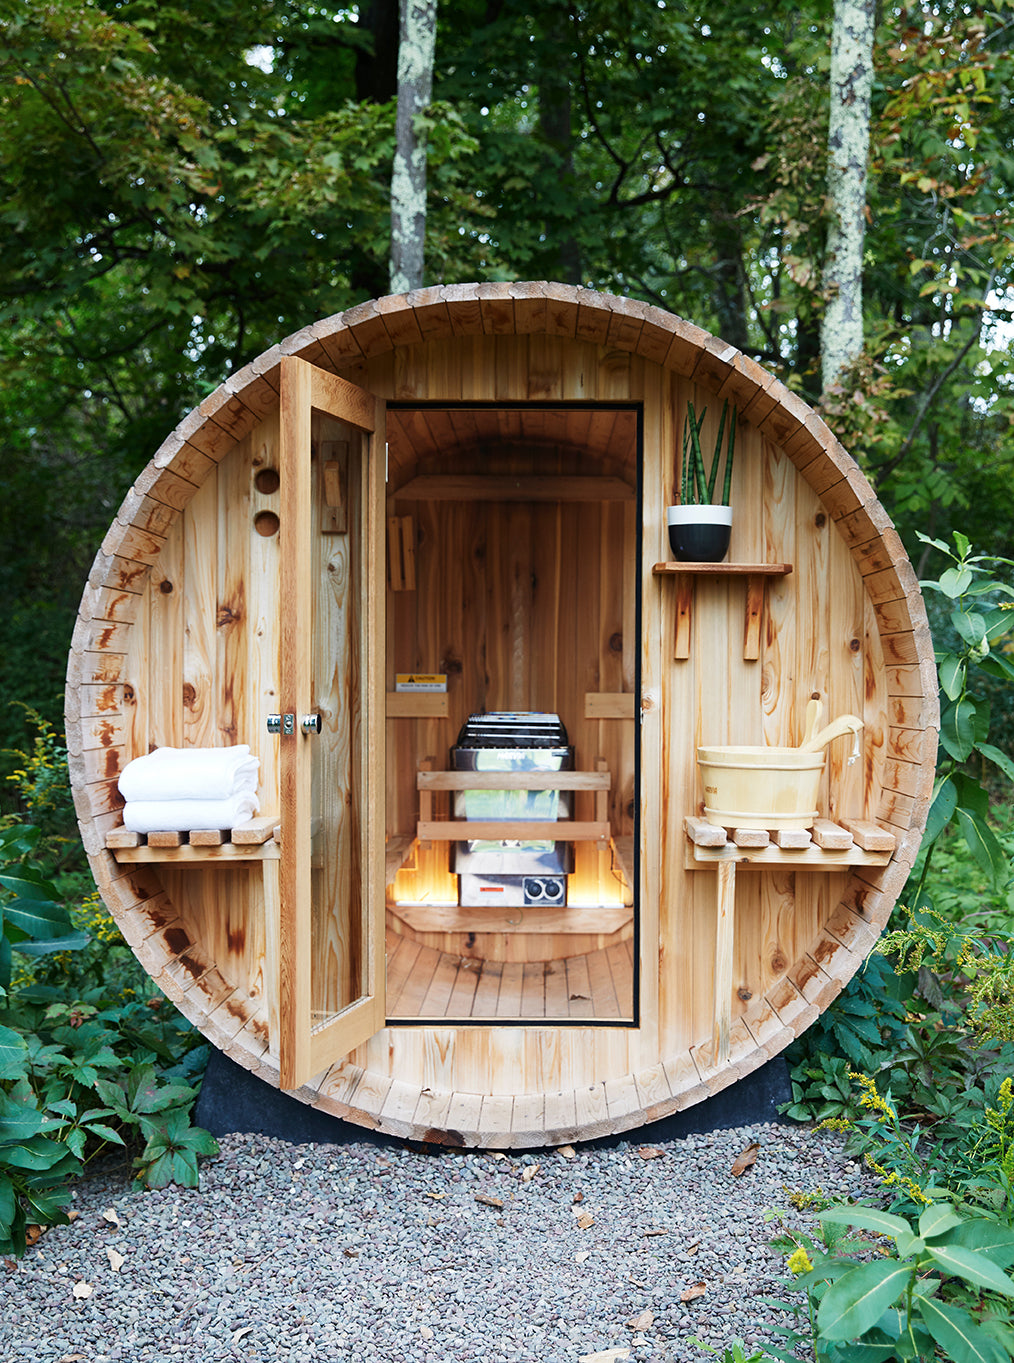 Eastwind Hotel & Bar, NY - circular natural wood structure with a door leading to a sauna